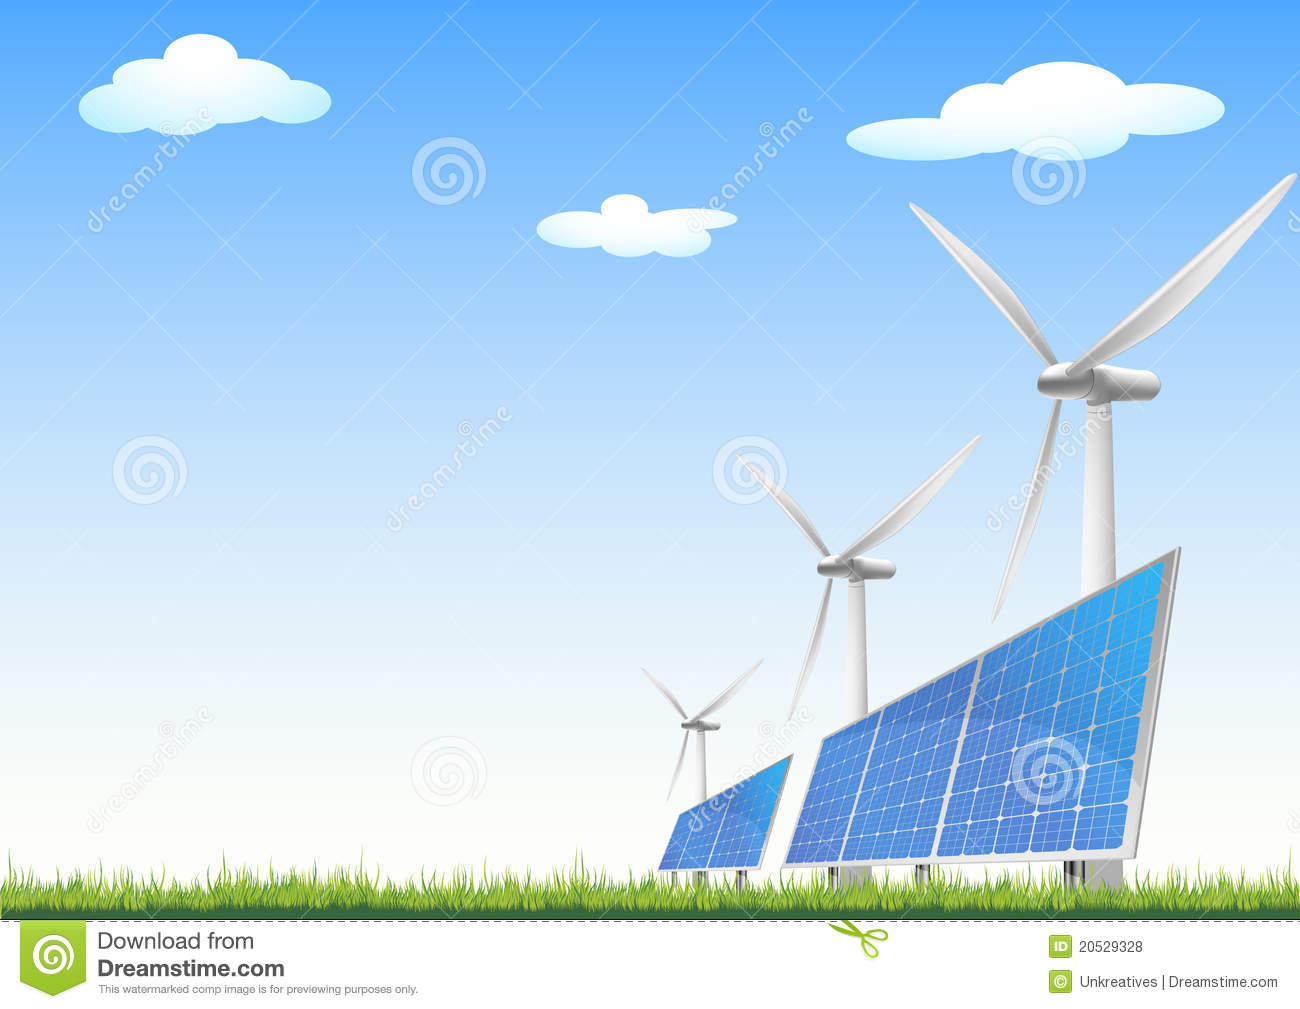 Illustration of panels with solar cells and wind generators on a green ...